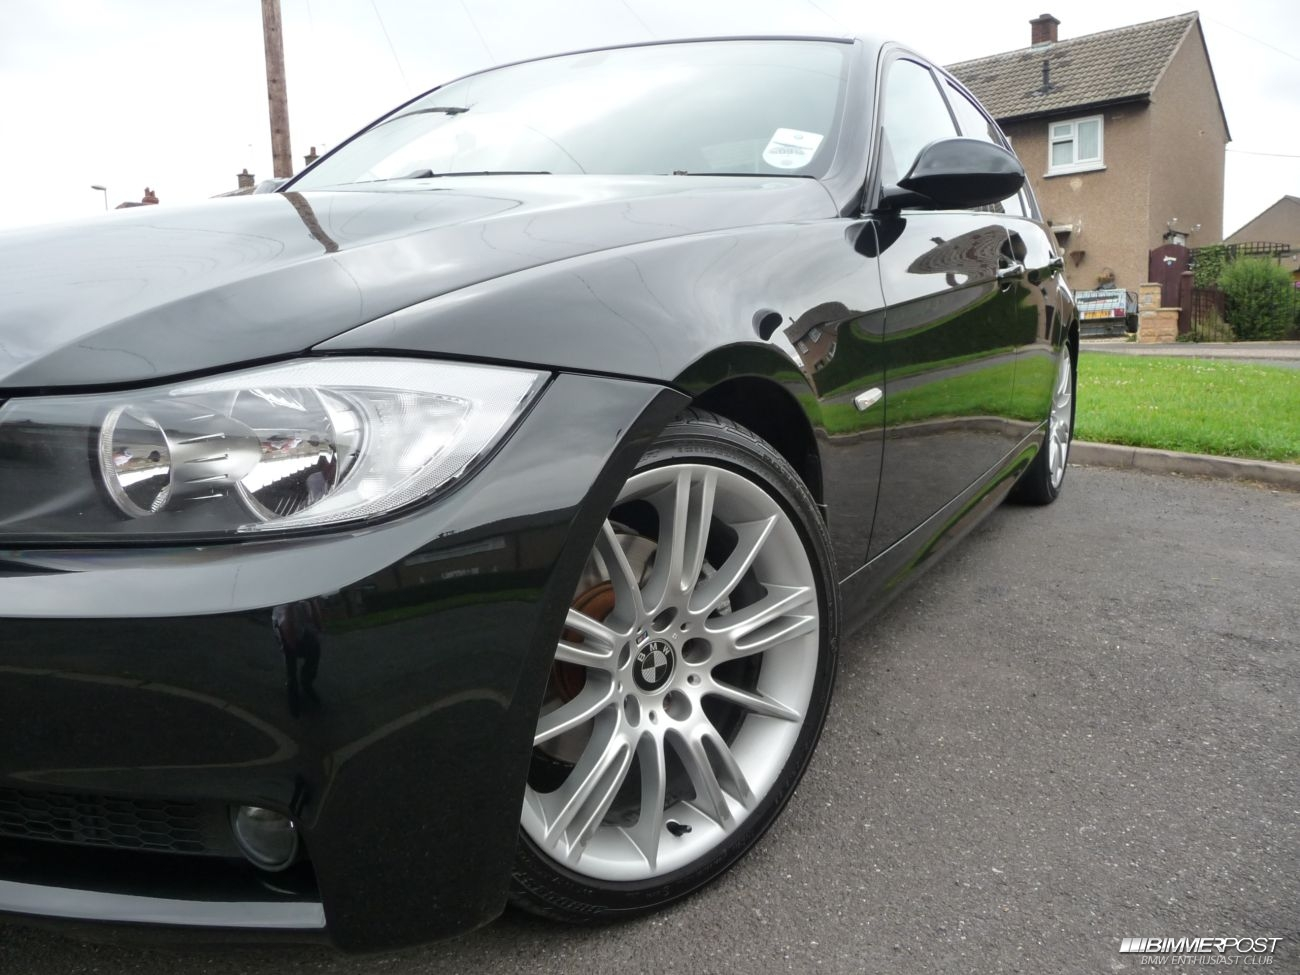 Lemans 330d S 2006 56 320d M Sport Sold Bimmerpost Garage